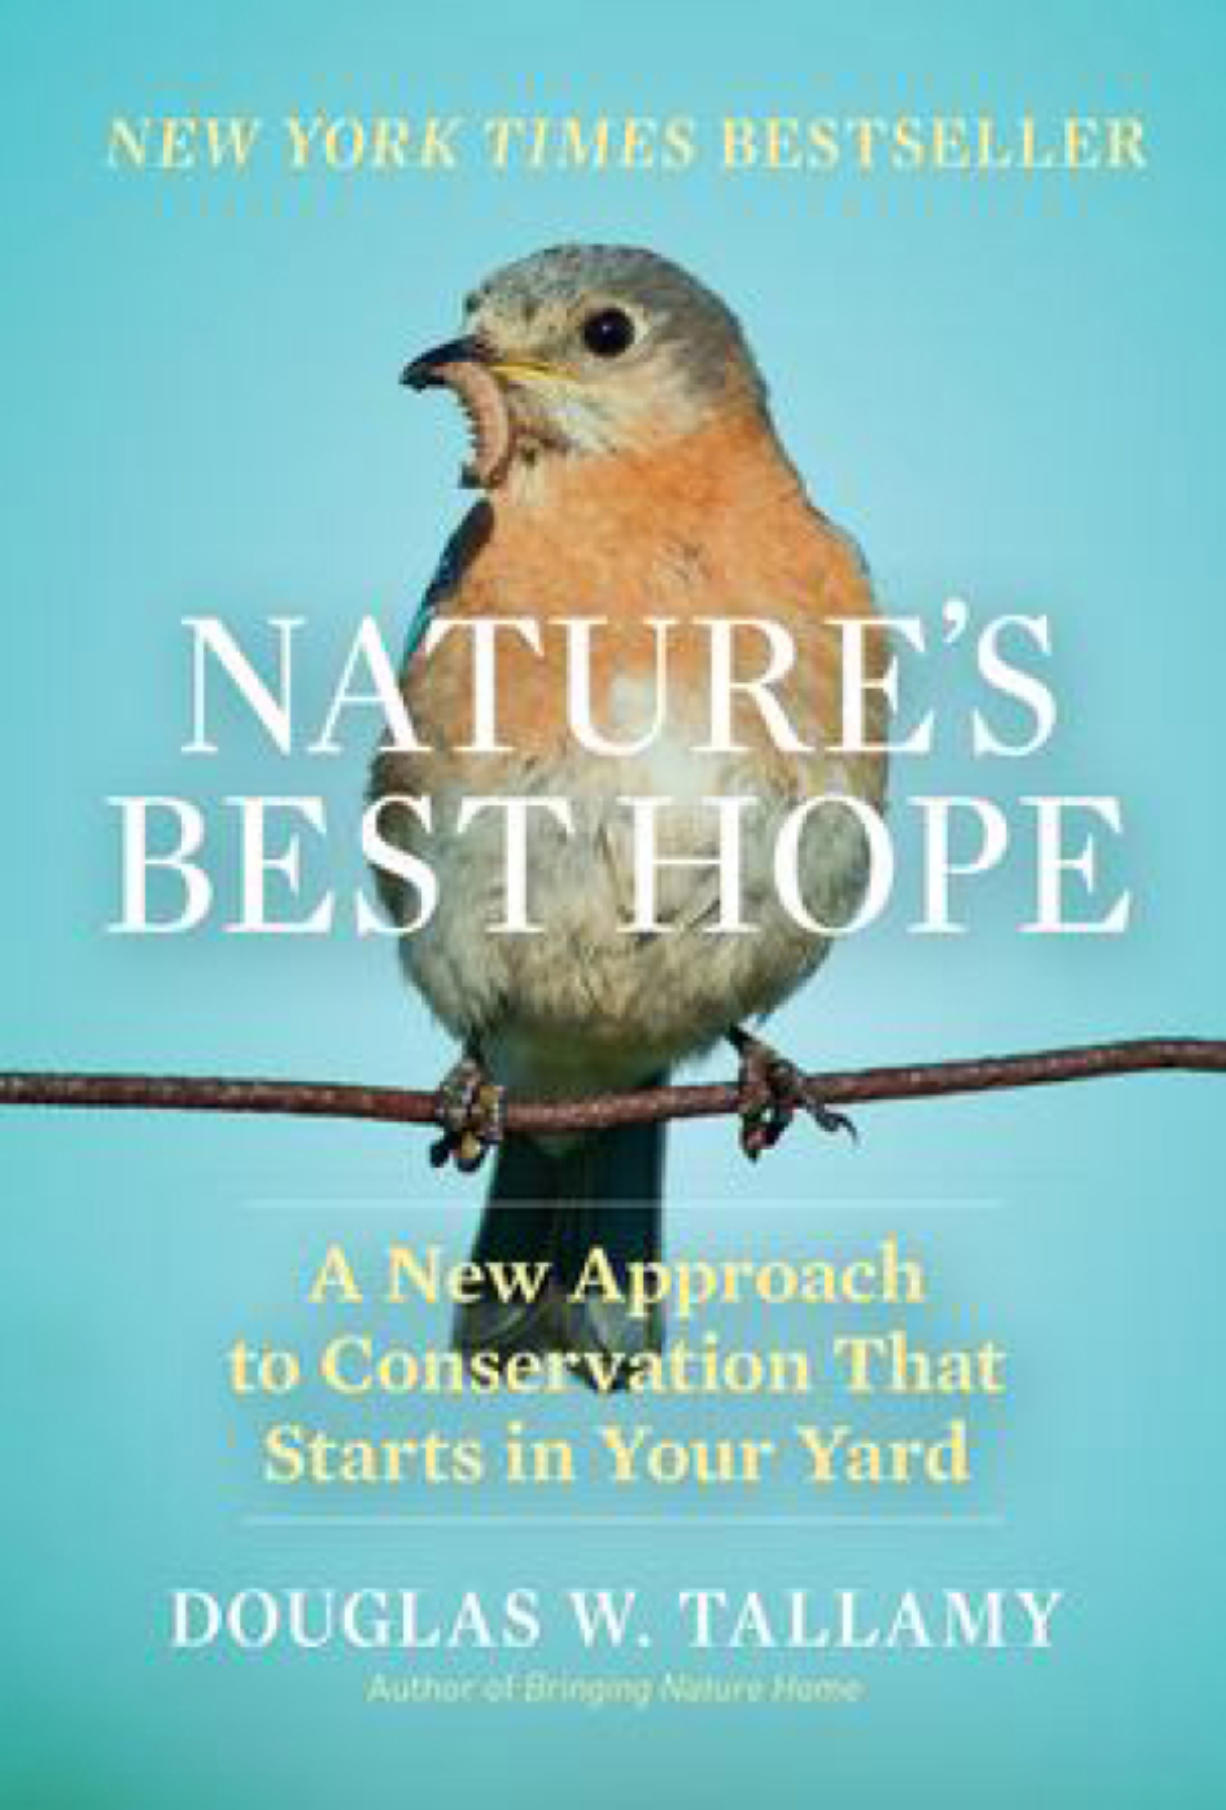 """Nature's Best Hope: A New Approach to Conservation That Starts in Your Yard"" by Douglas W. Tallamy is the selection for the next Nature Lovers' Book Club meeting on March 5."